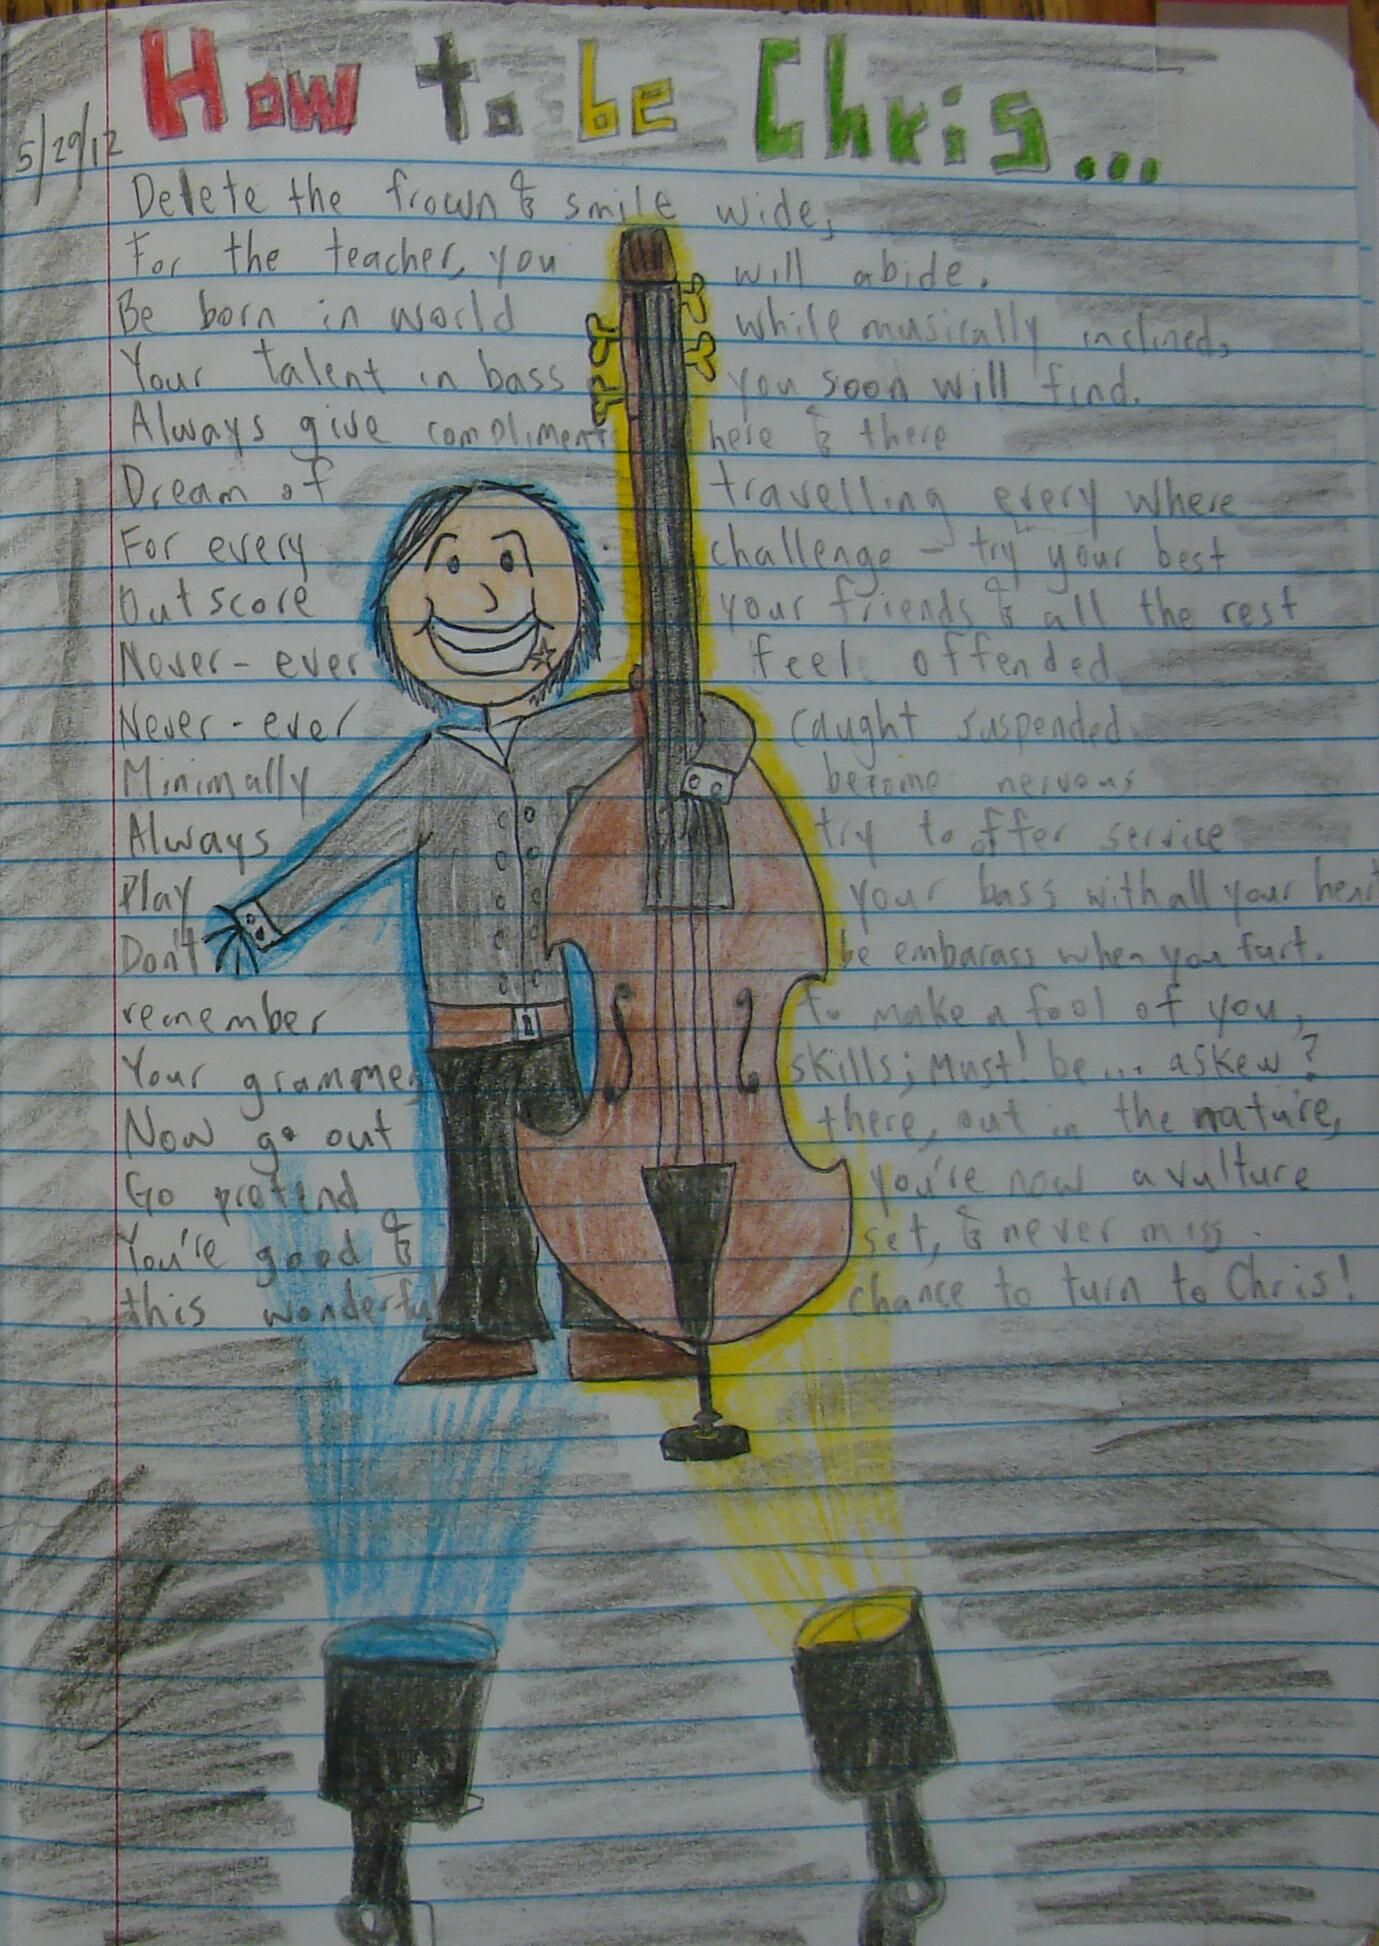 """8th grader Chris won a 2012 """"Mr. Stick of the Year"""" award with this poems about himself.  Check out my """"Mr. Stick"""" online resources: http://corbettharrison.com/Mr_Stick.html"""